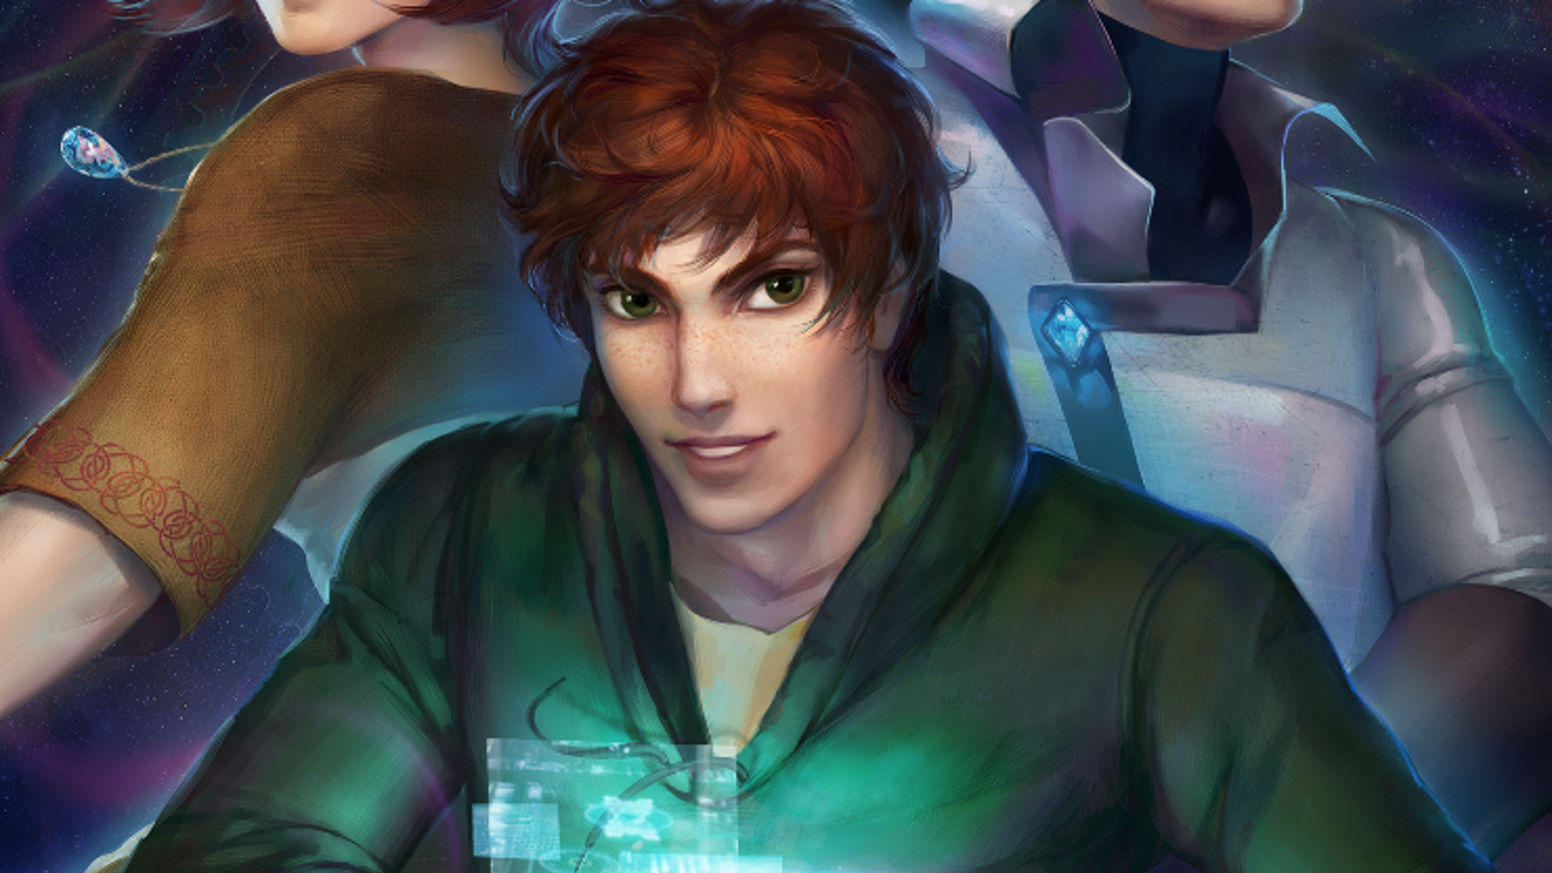 A science-fiction visual novel exploring the nature of time, technology, and the human desire for power.